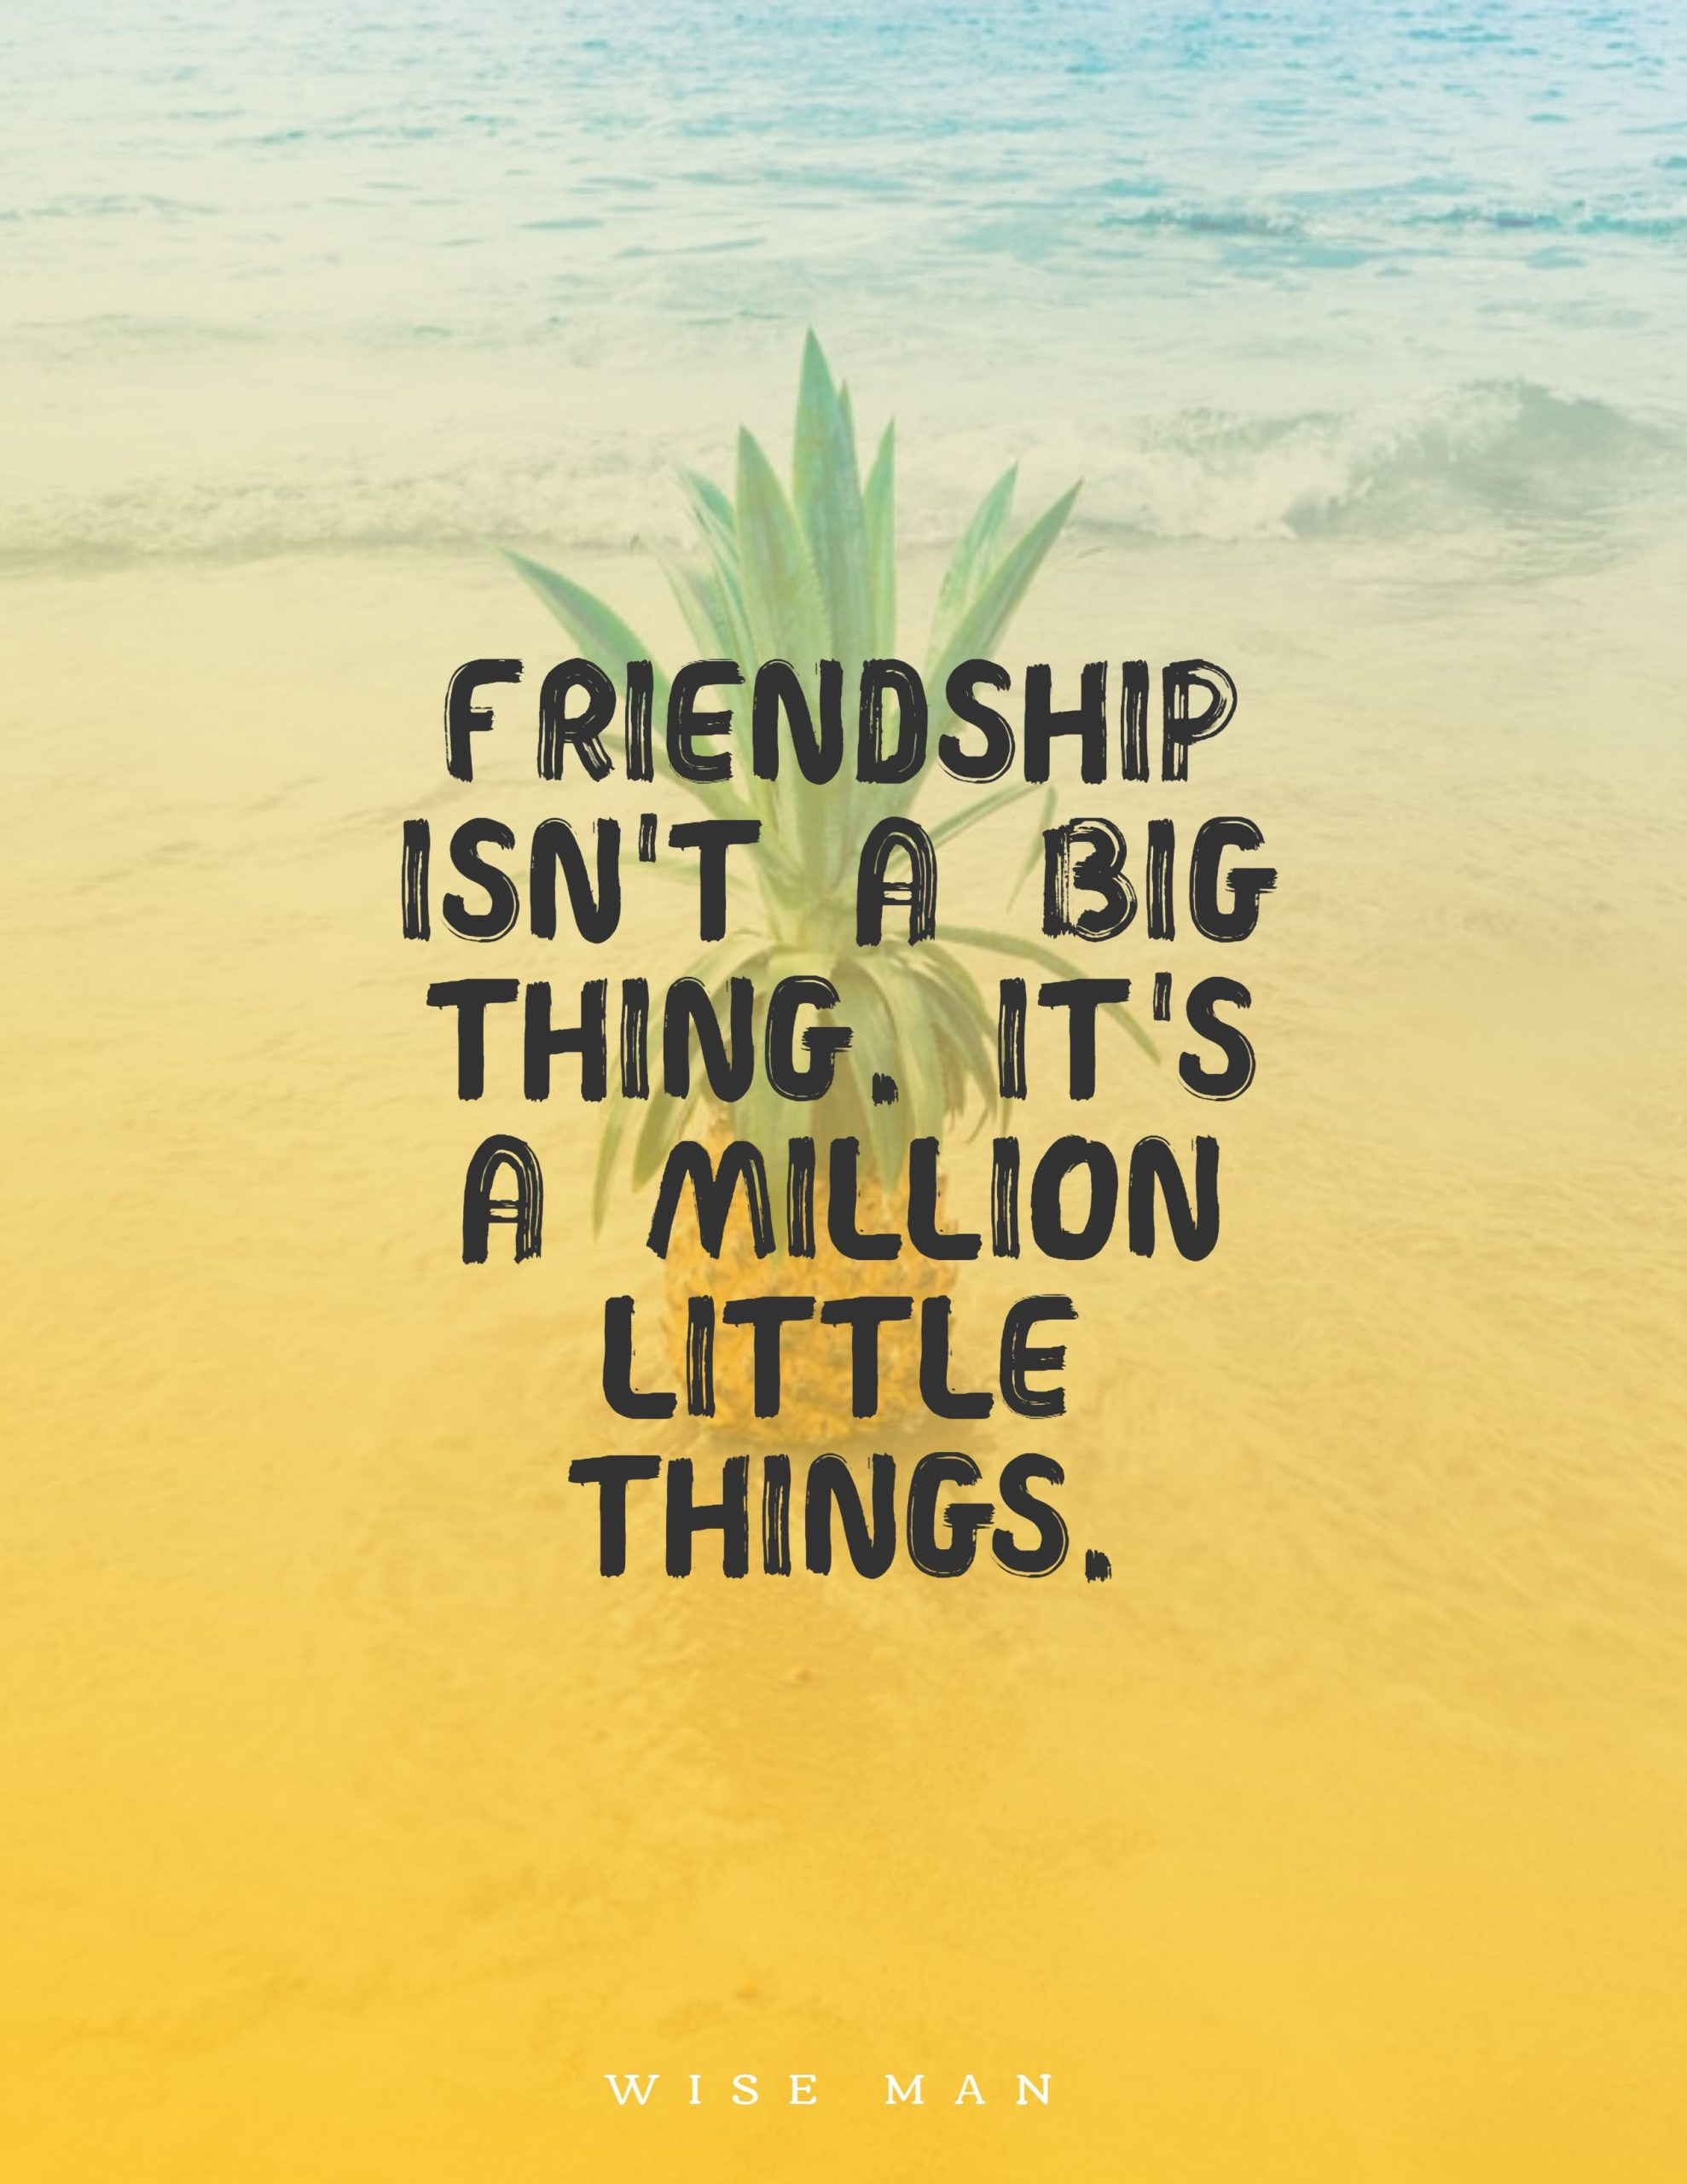 Quotes image of Friendship isn't a big thing. It's a million little things.